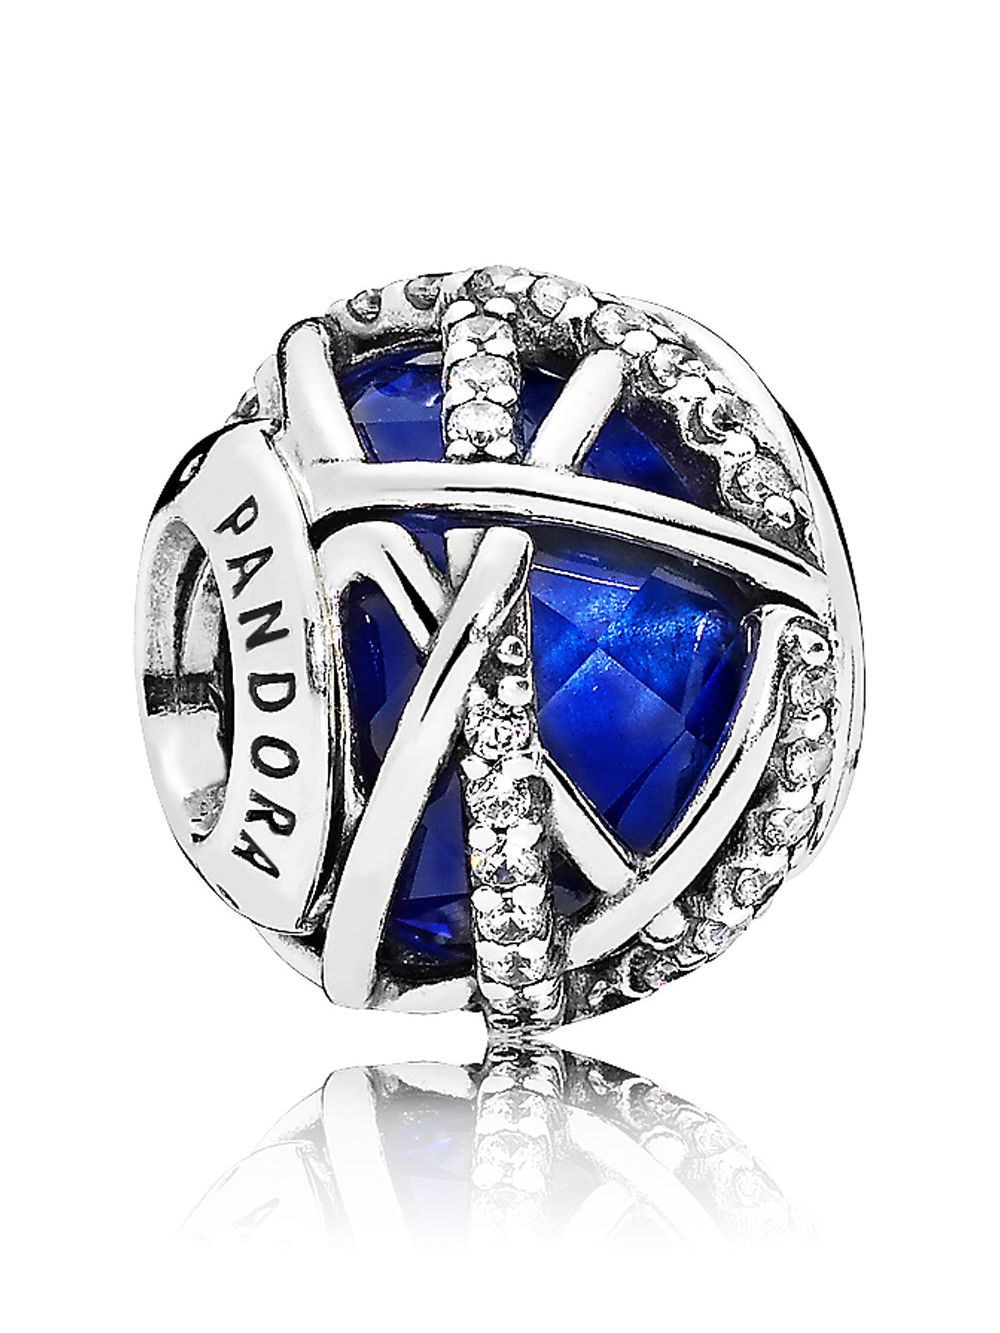 071c5caebe81e Pandora 796361NCB Charm Royal Blue Galaxy